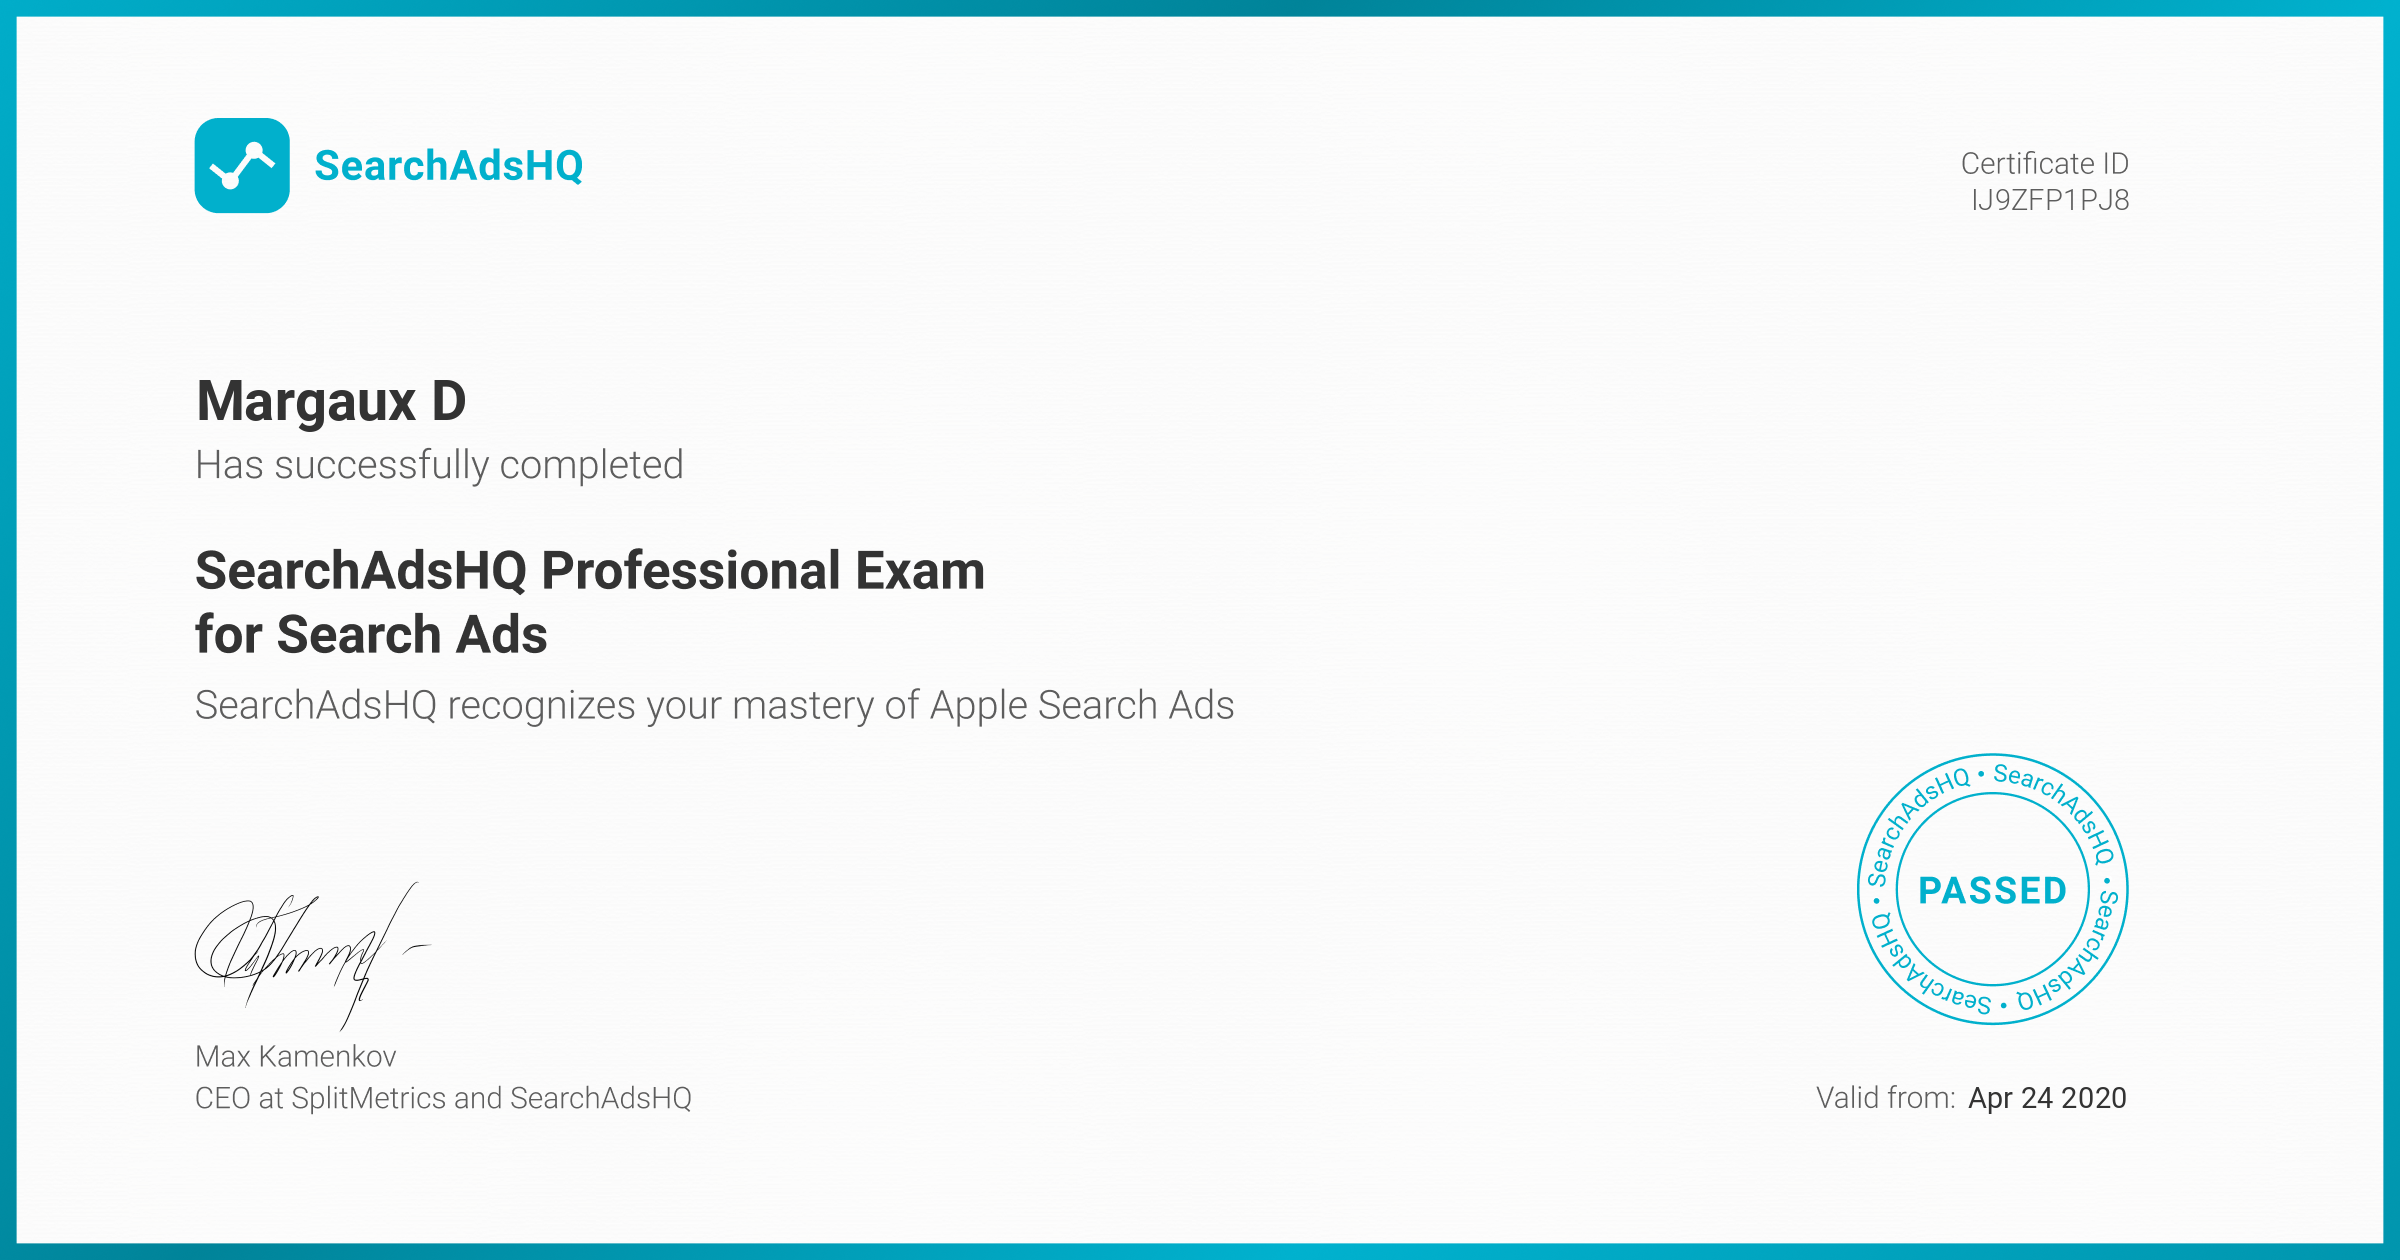 Certificate for Margaux D | SearchAdsHQ Professional Exam for Search Ads